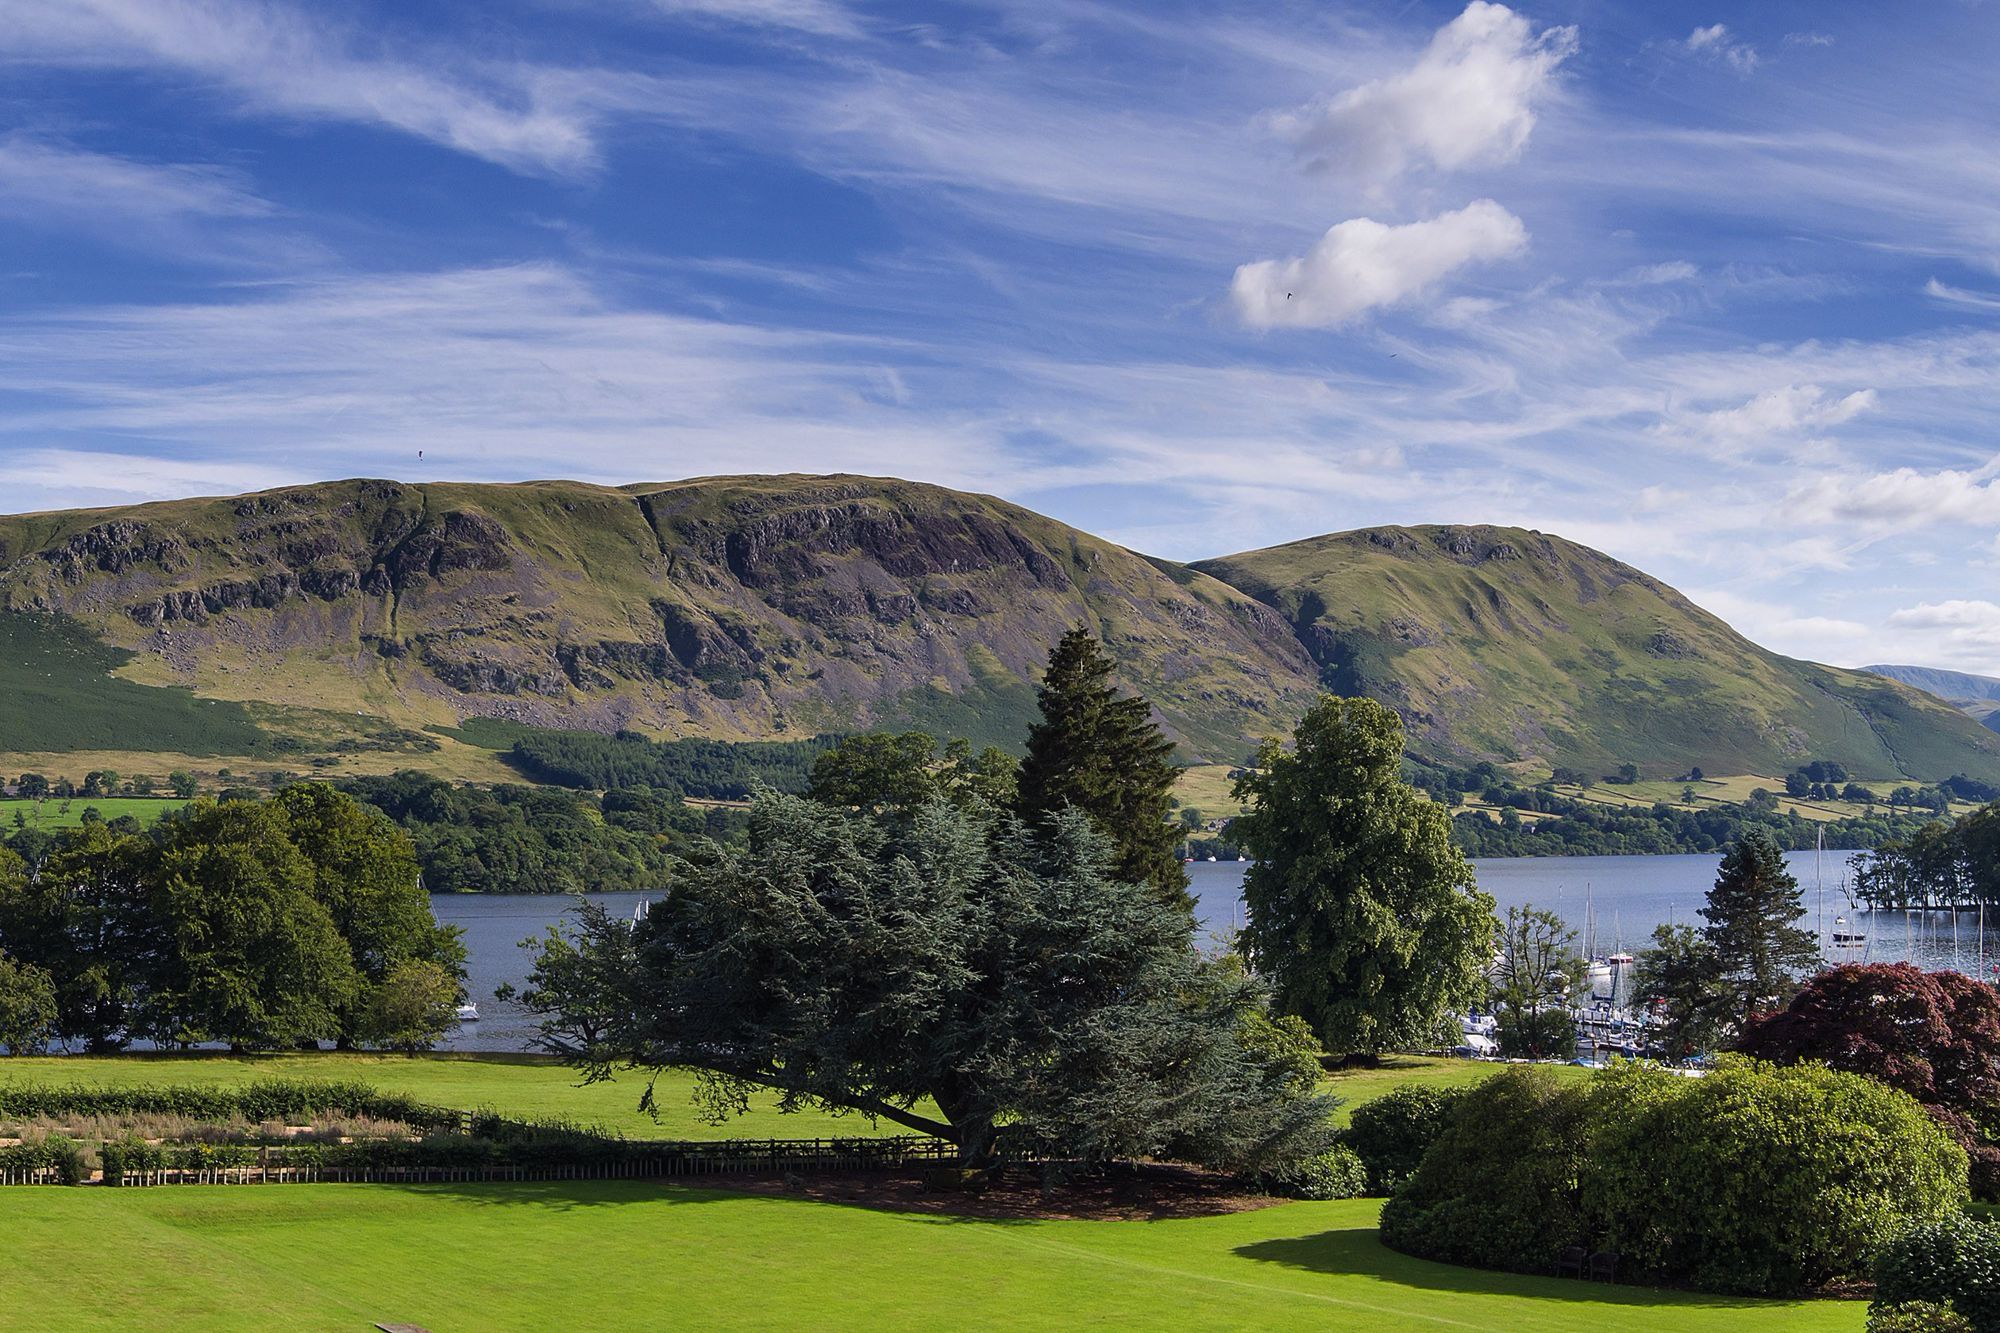 Hotels, Cottages, B&Bs & Glamping in Cumbria